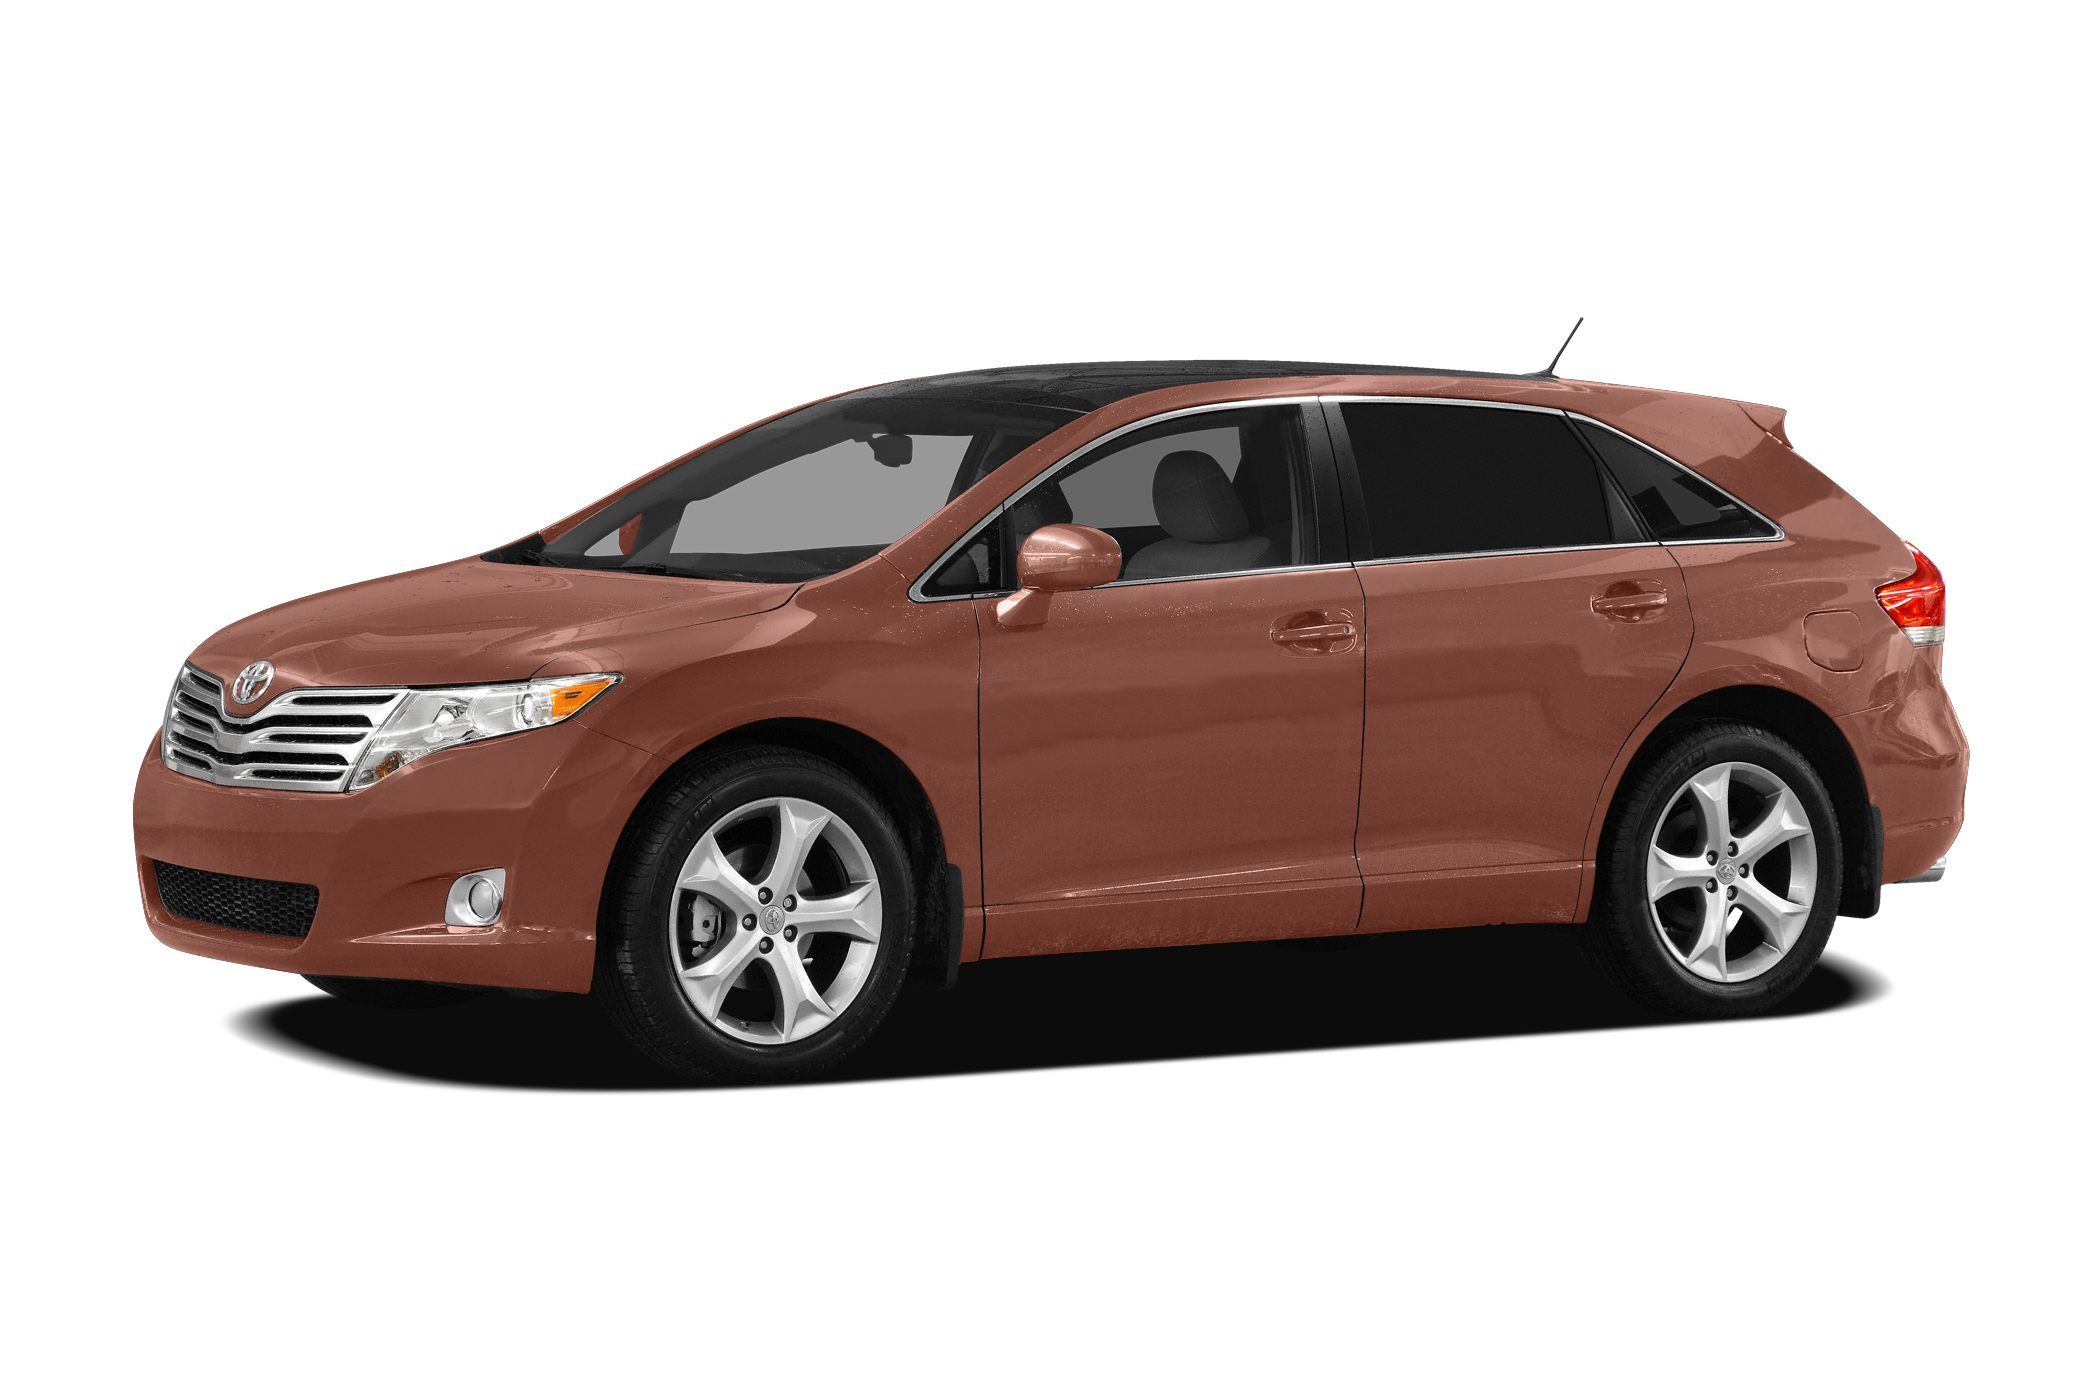 reviews of review by ca day autotrader venza toyota expert